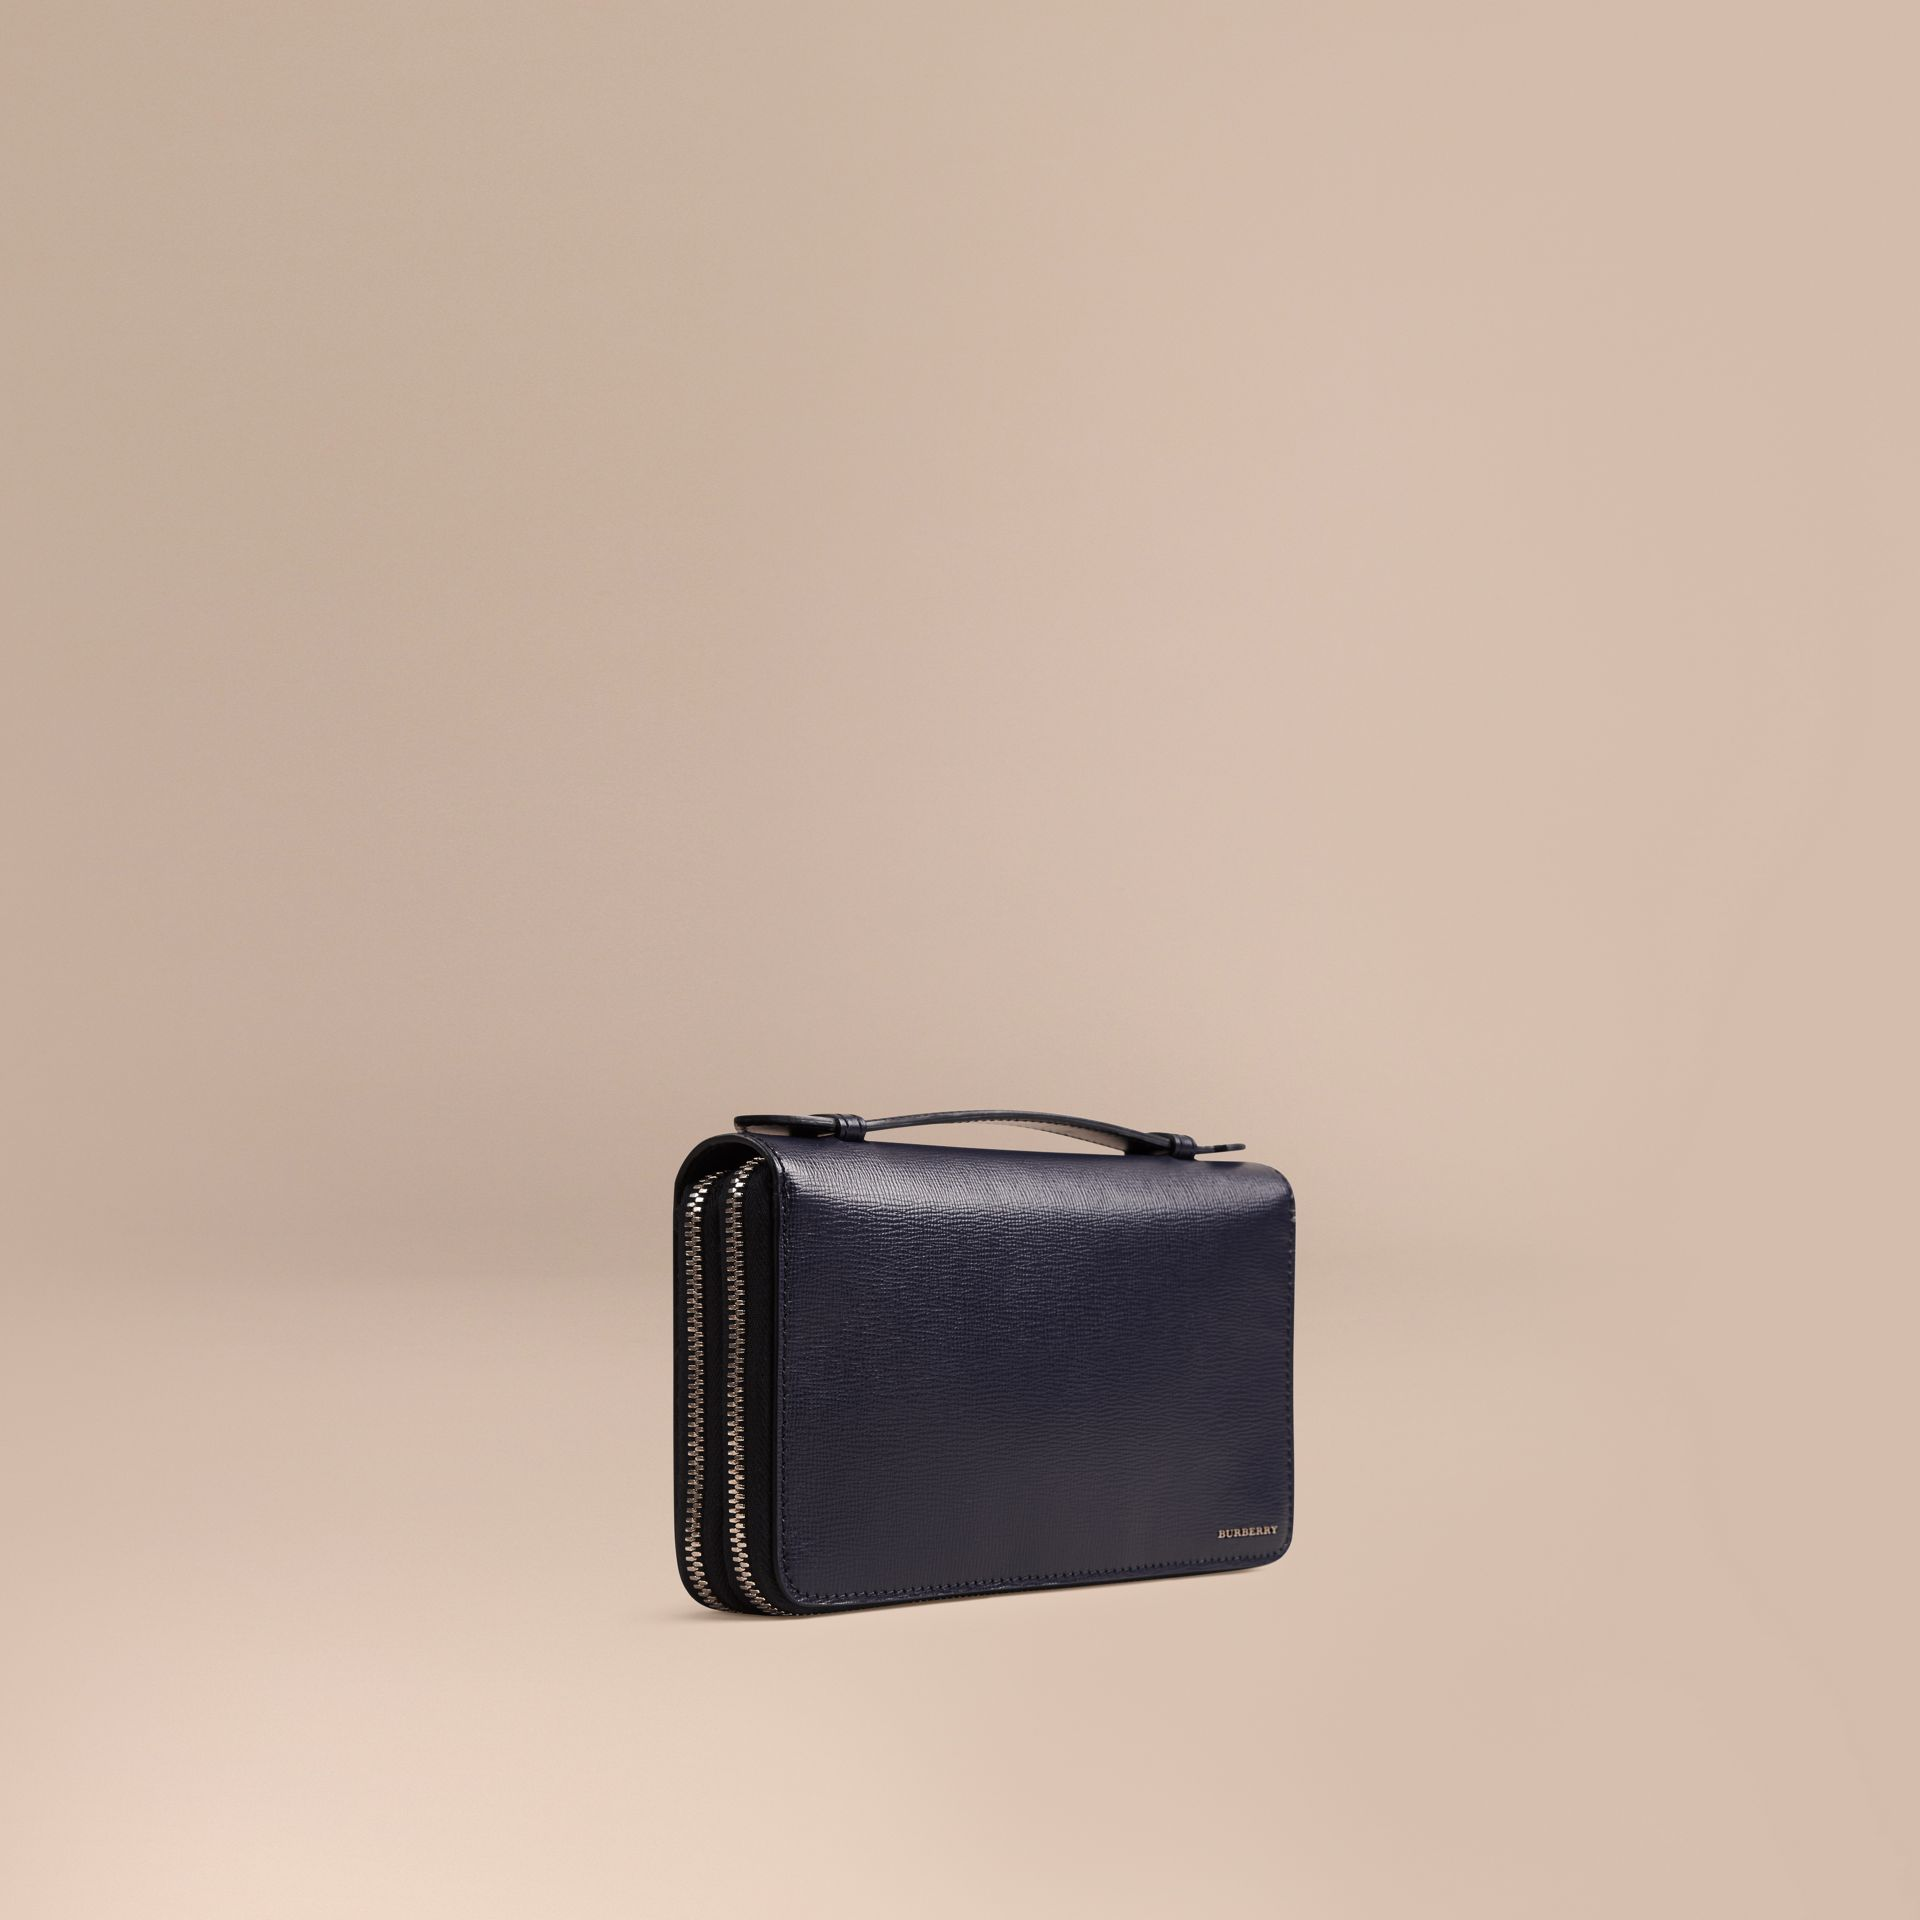 London Leather Travel Wallet in Dark Navy - Men | Burberry - gallery image 1